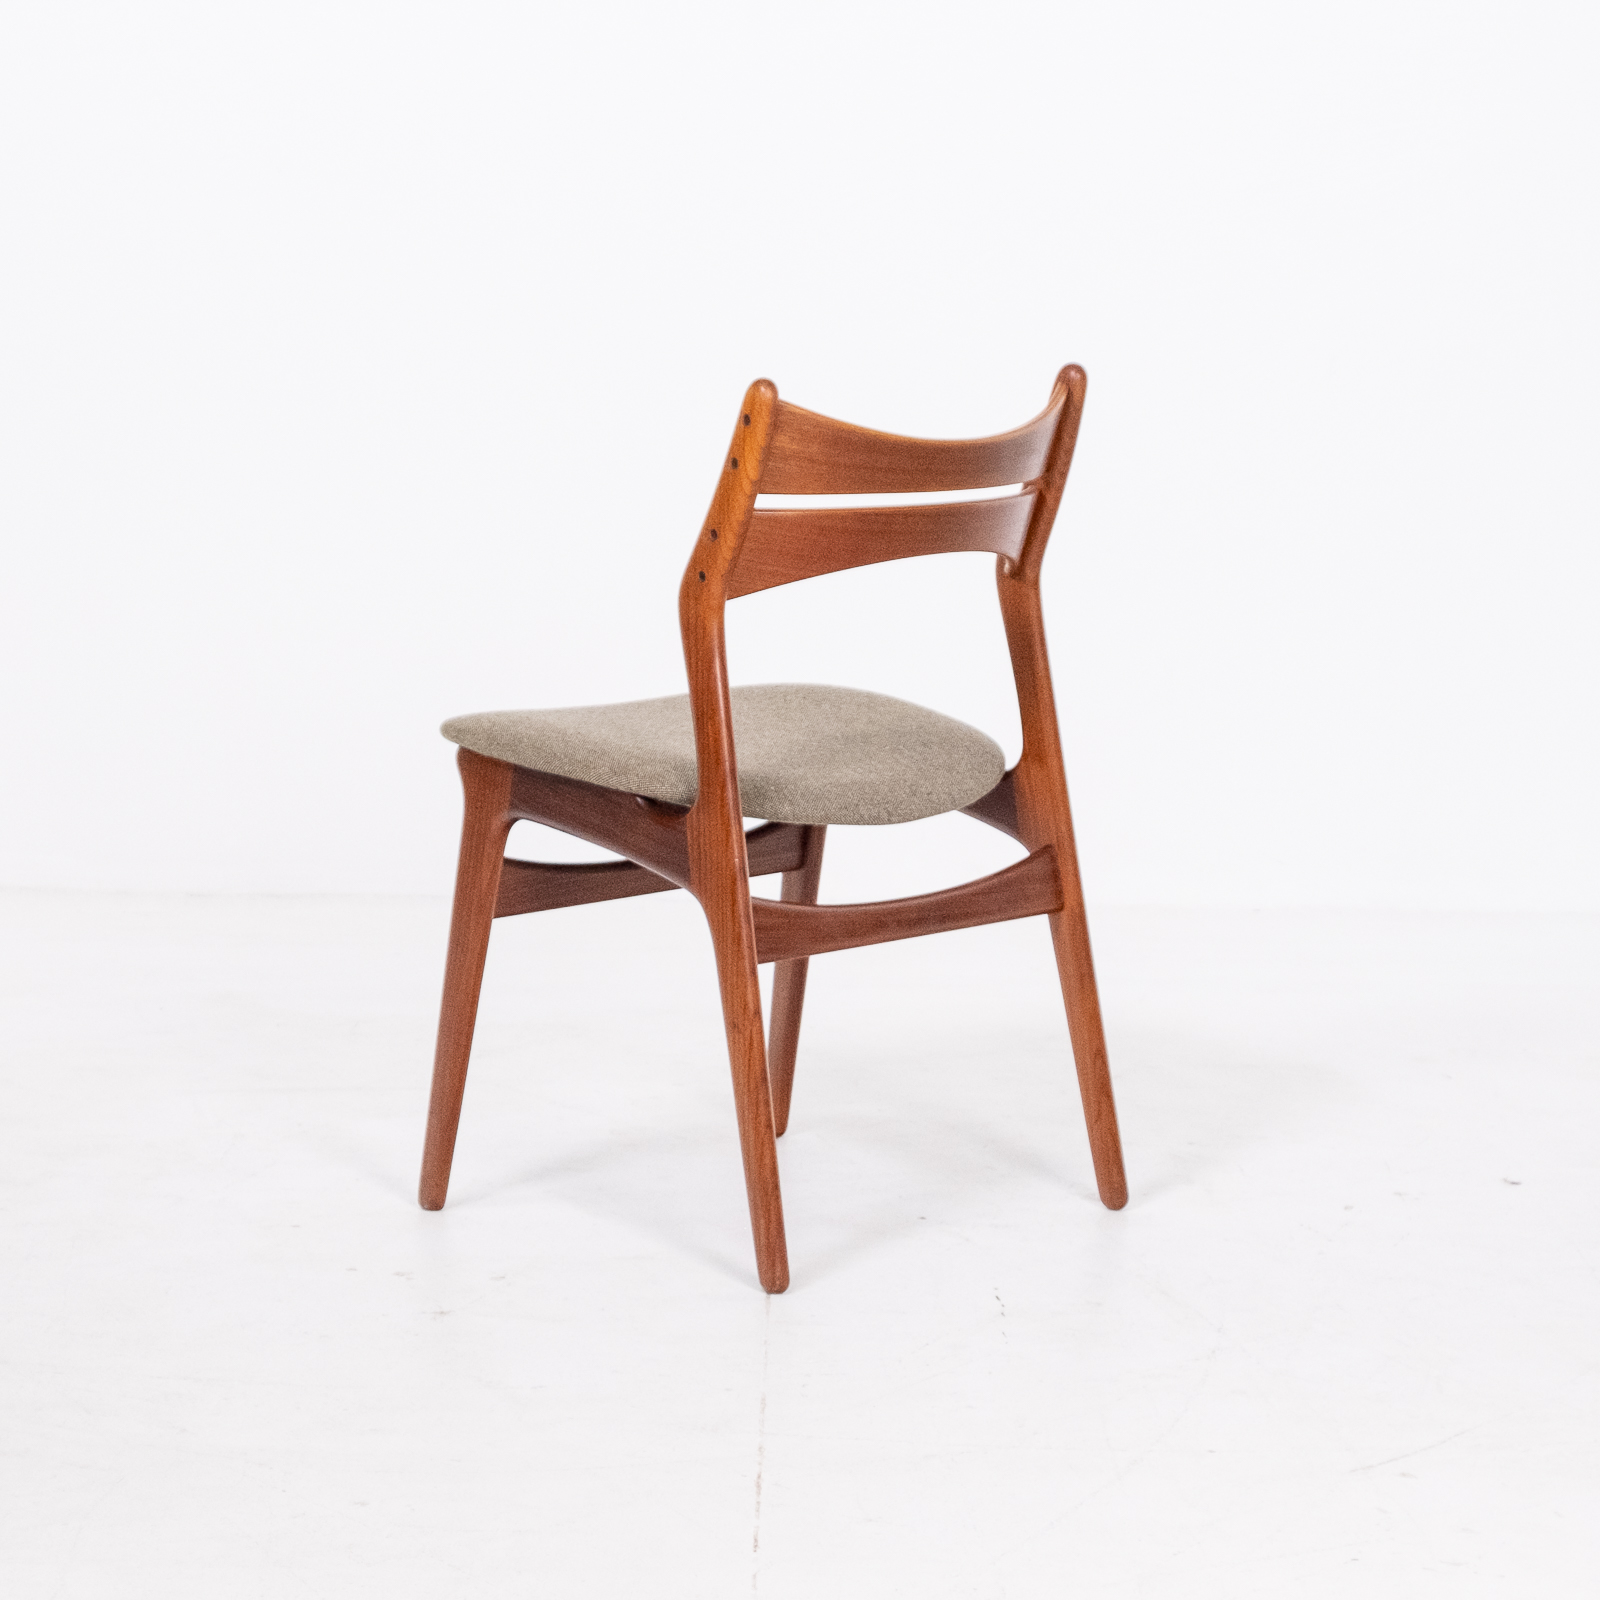 Set Of 2 Model 130 Dining Chairs By Erik Buch For Christian Christensens Mobelfabrik In New Instyle Upholstery And Teak, 1960s, Denmark 06